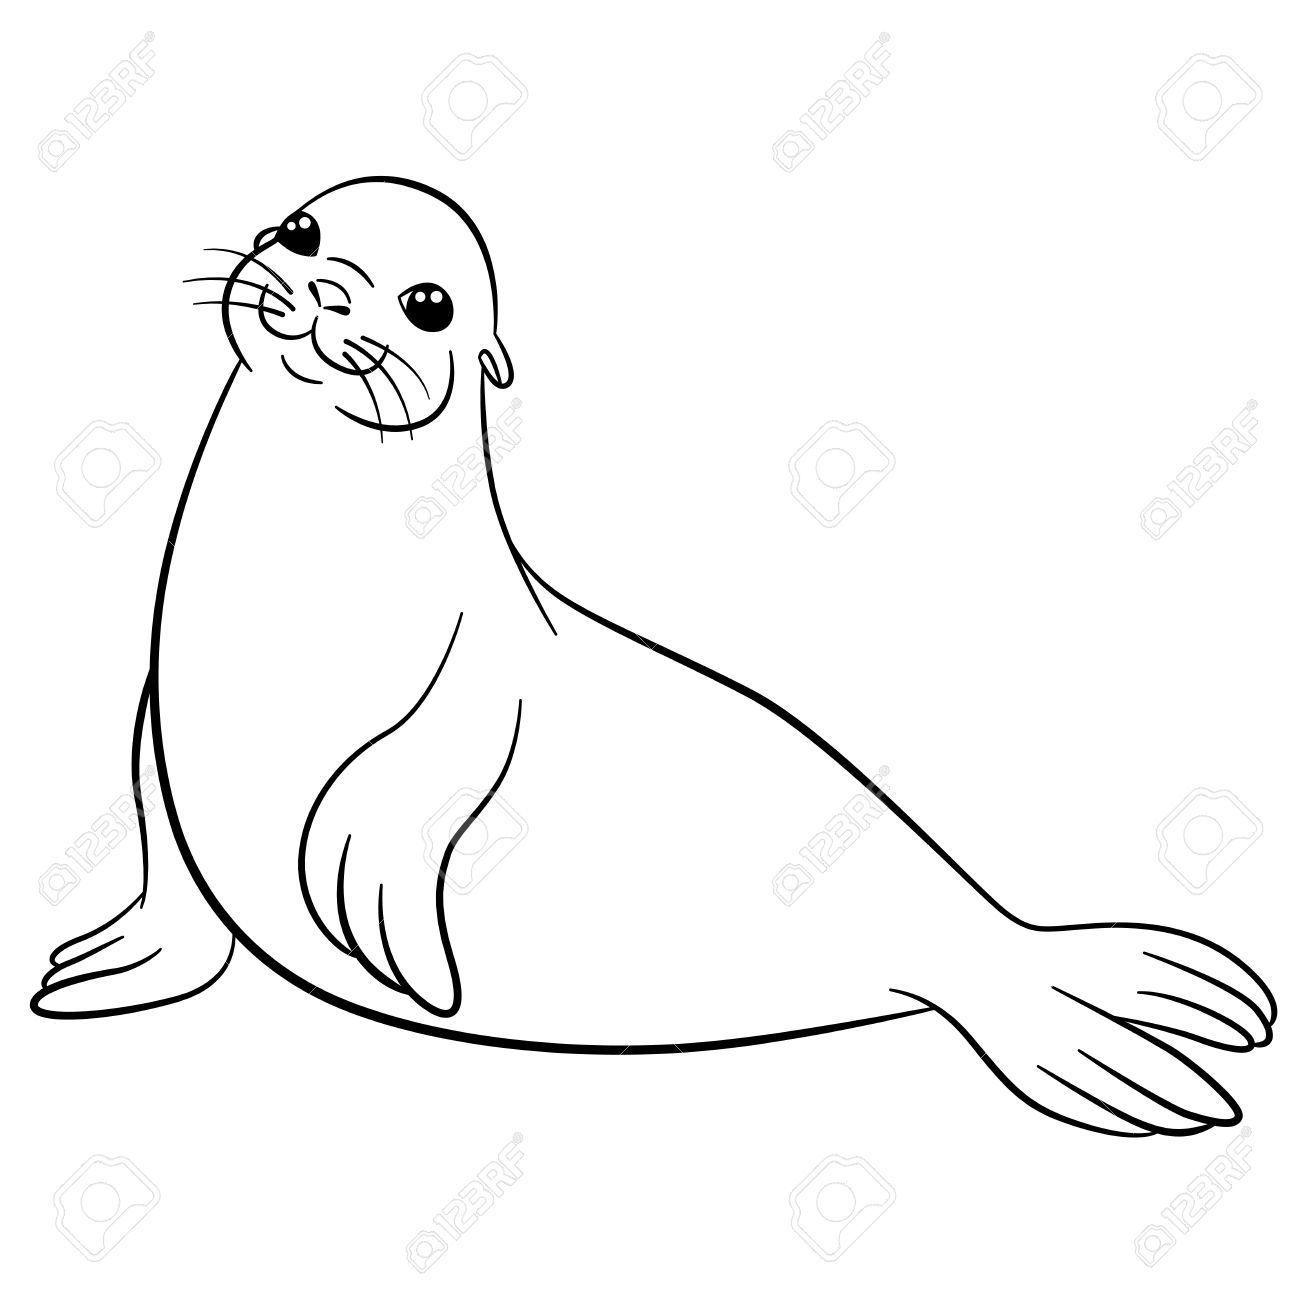 How To Draw A Seal Google Search Animal Drawings Drawings Portrait Drawing